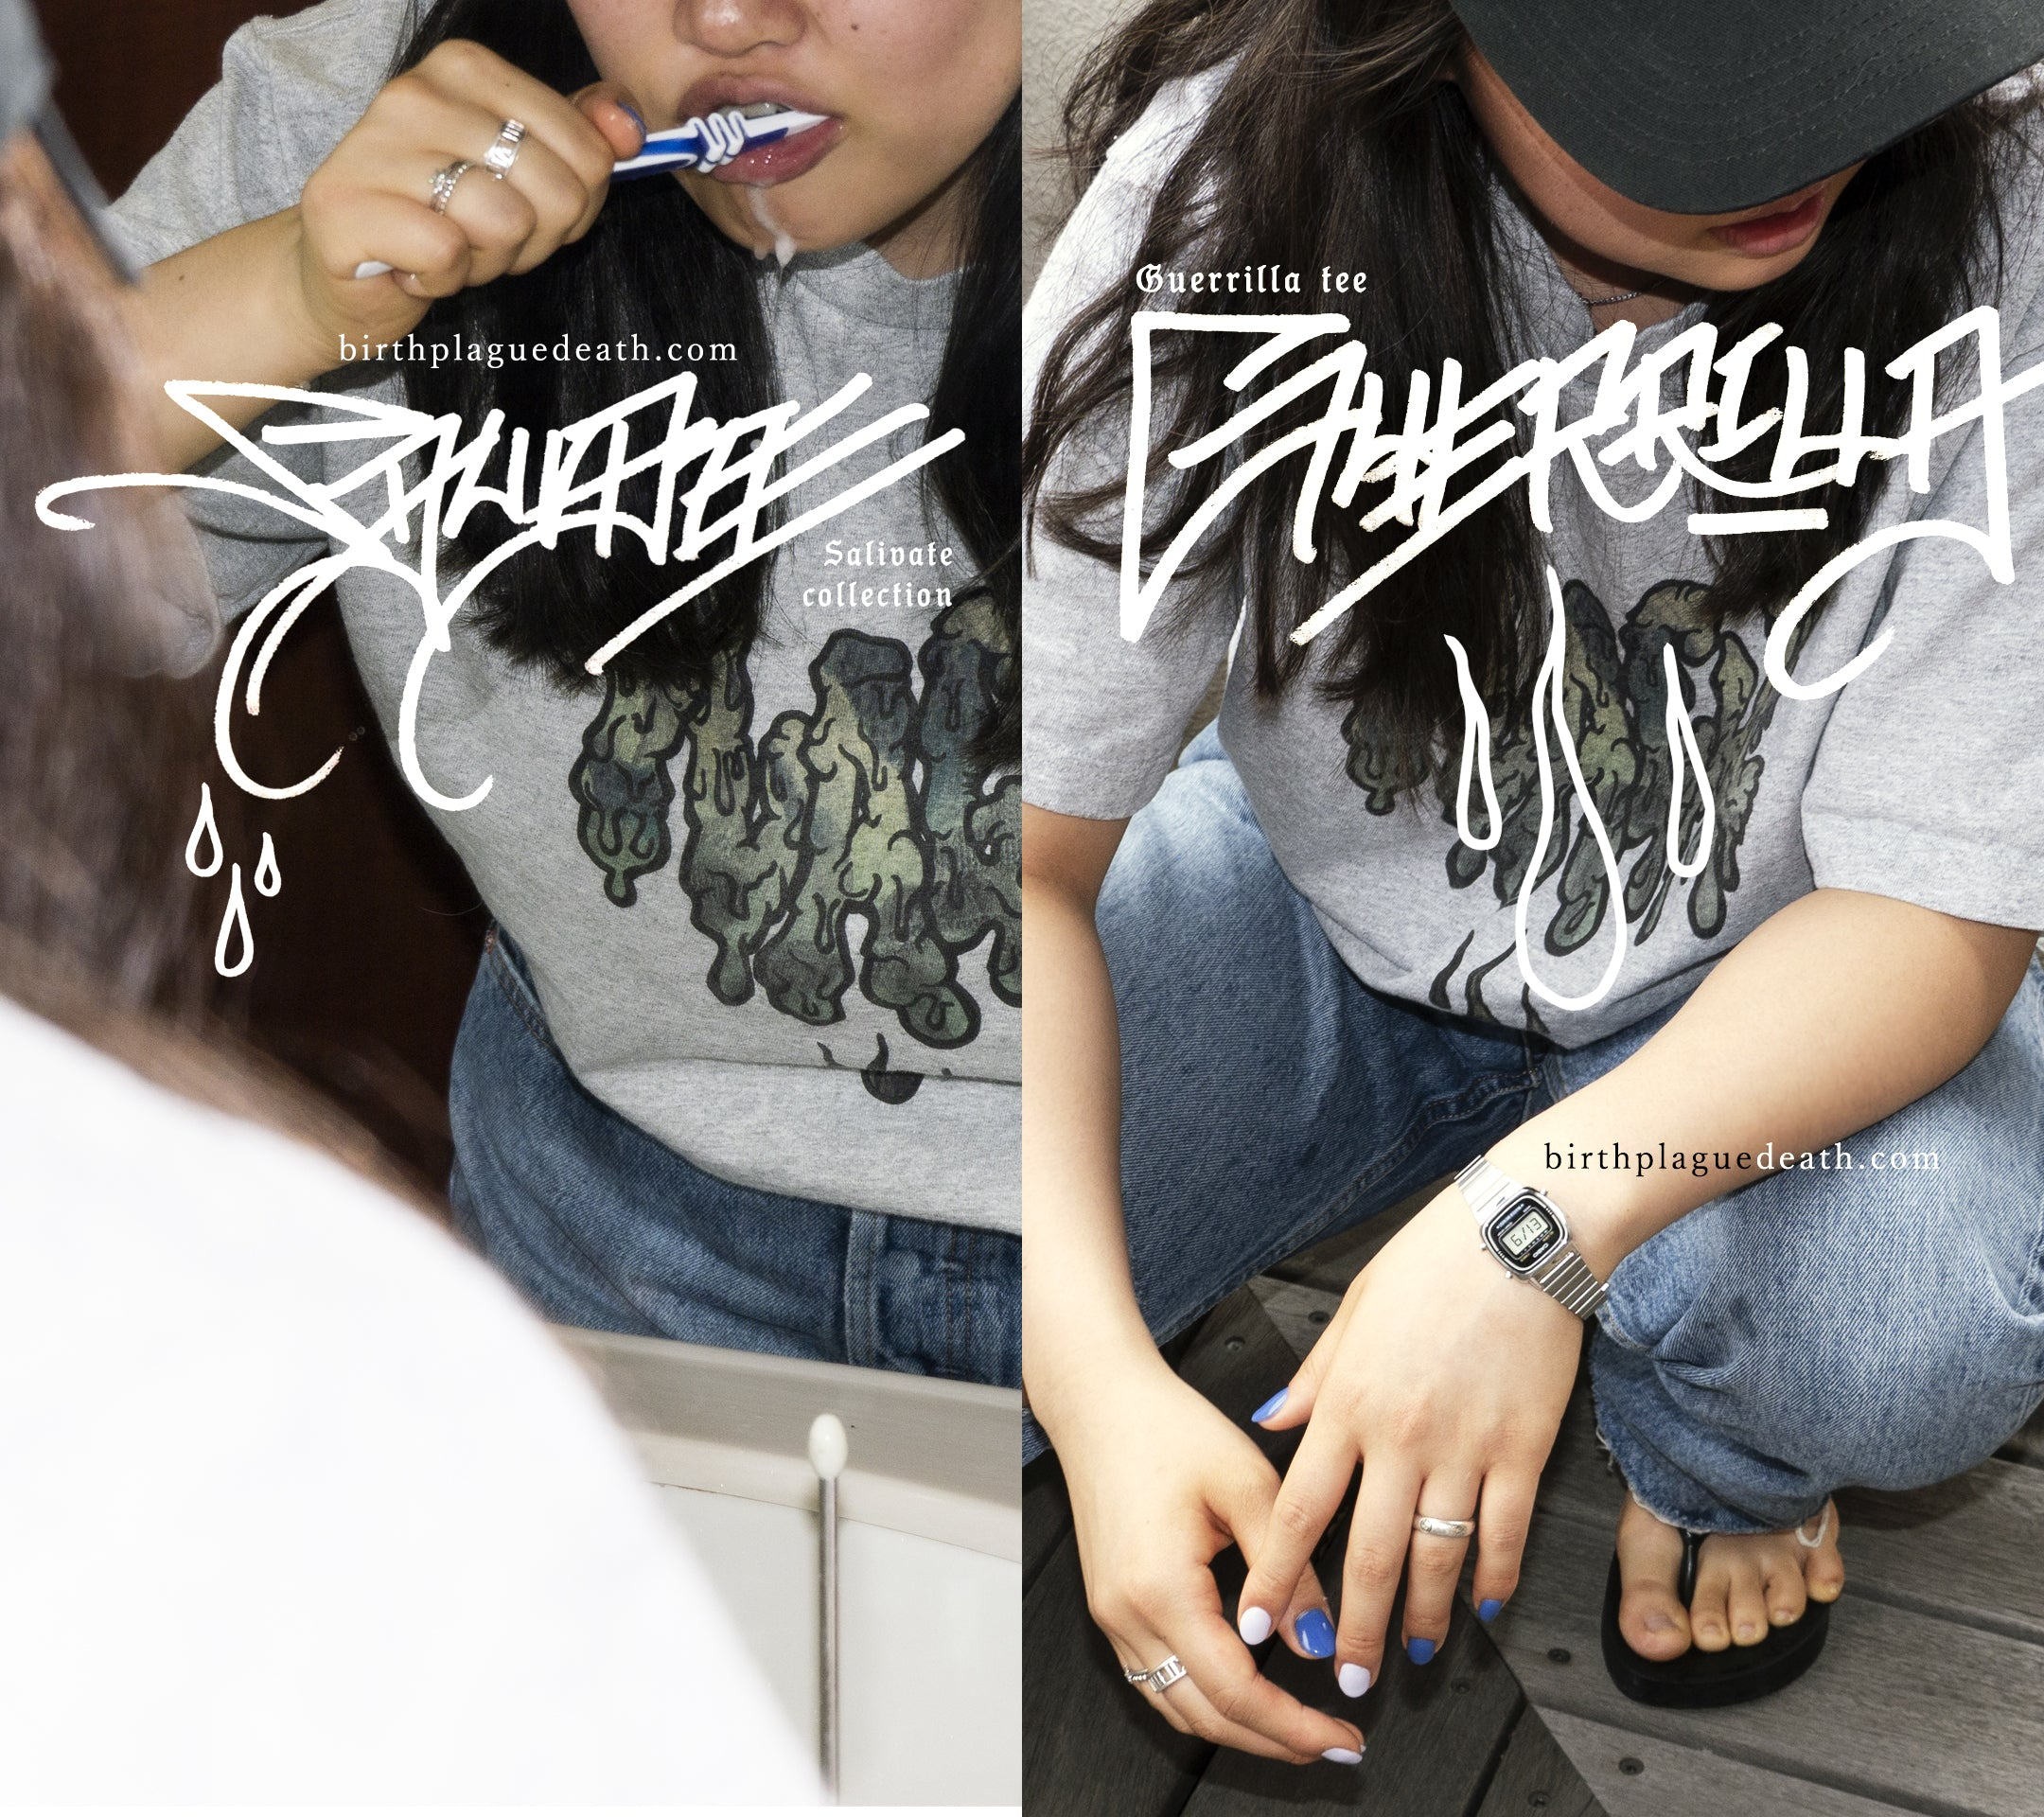 Model photo / Guerrilla Tee / Salivate Collection  / drops 6/26(fri)